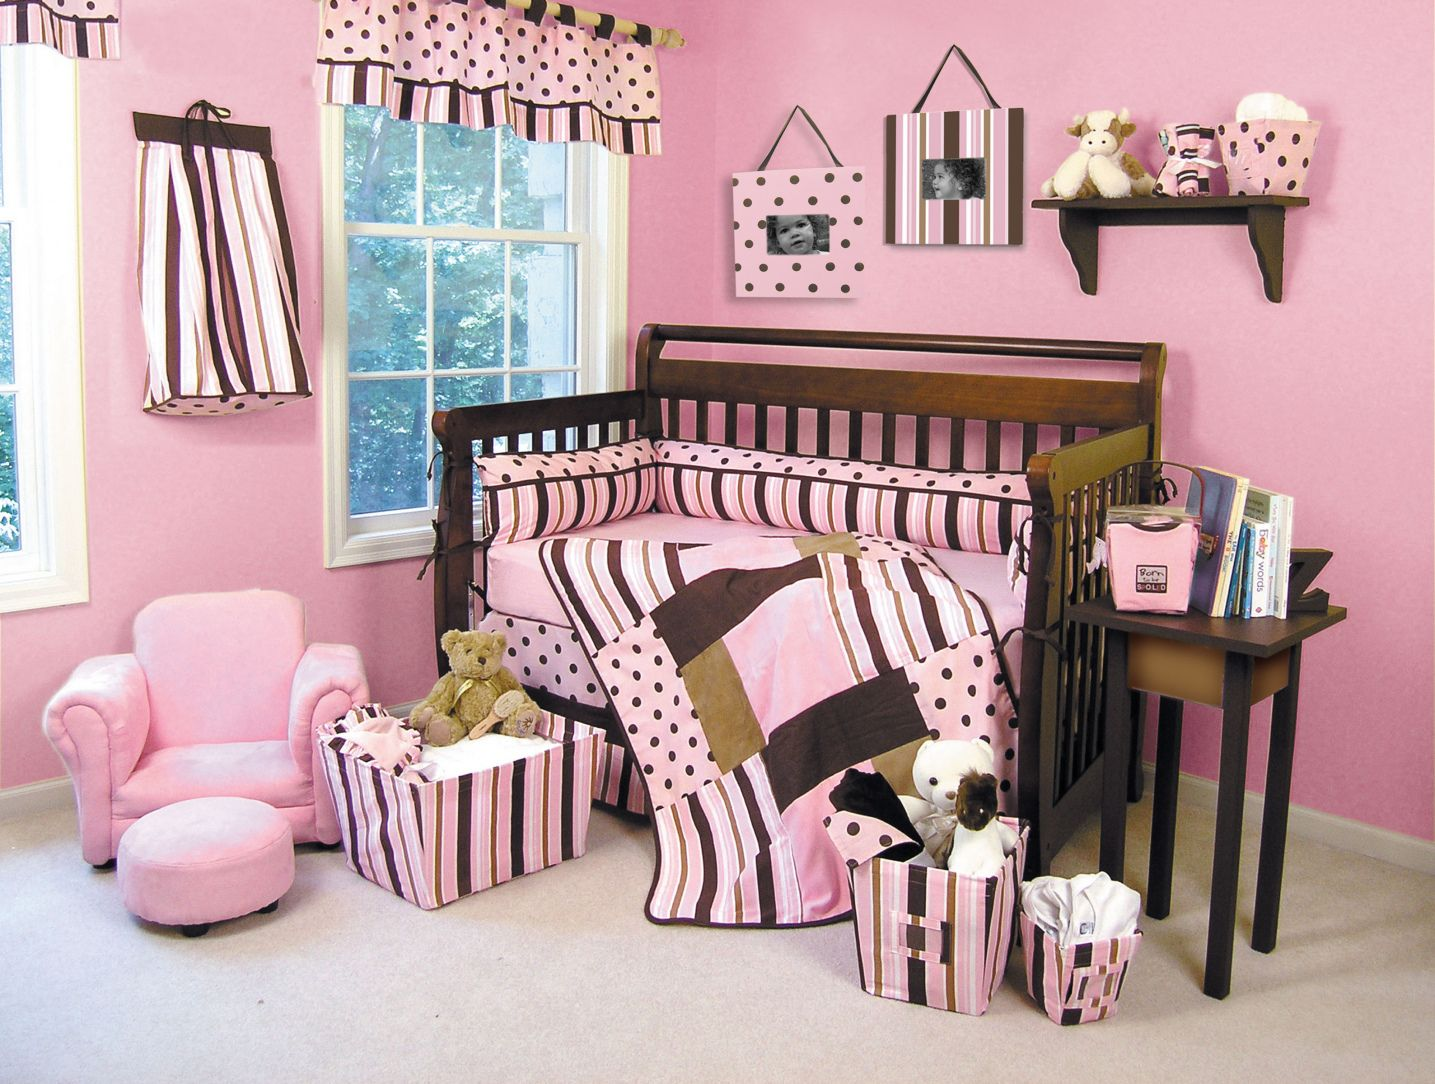 99+ Pink and Brown Baby Room - Best Paint to Paint ...